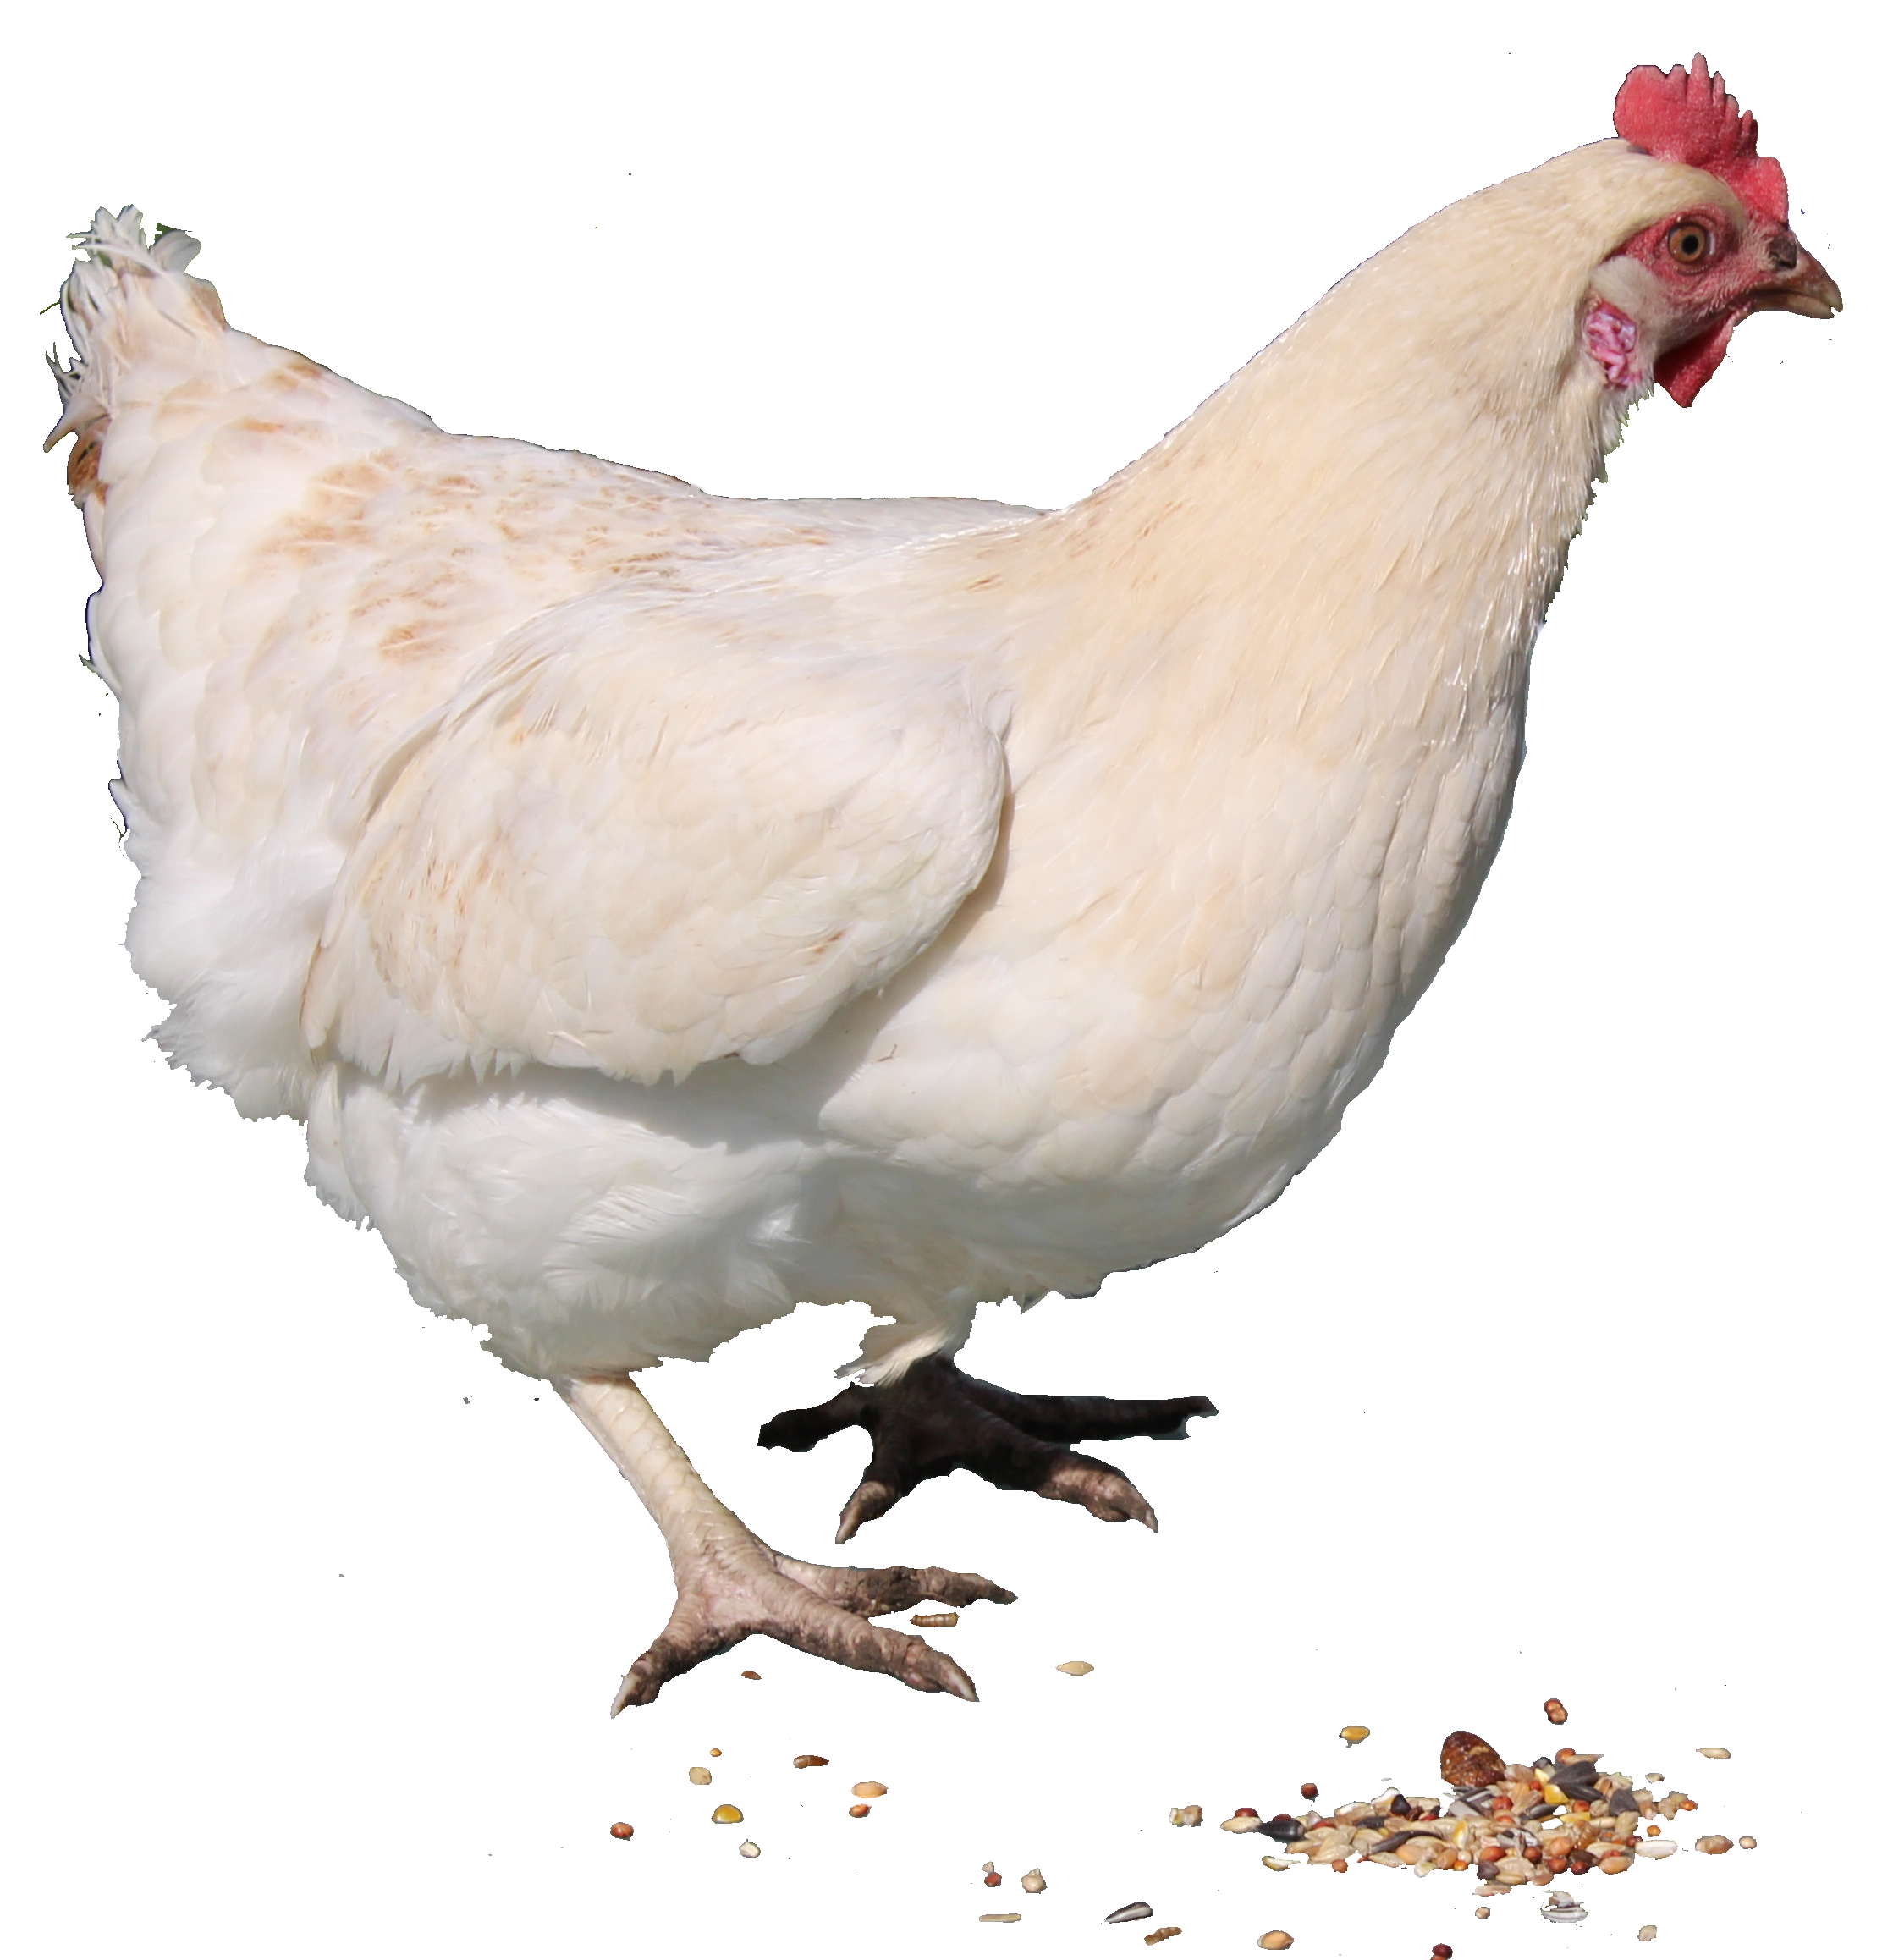 White Chicken Png image #4028